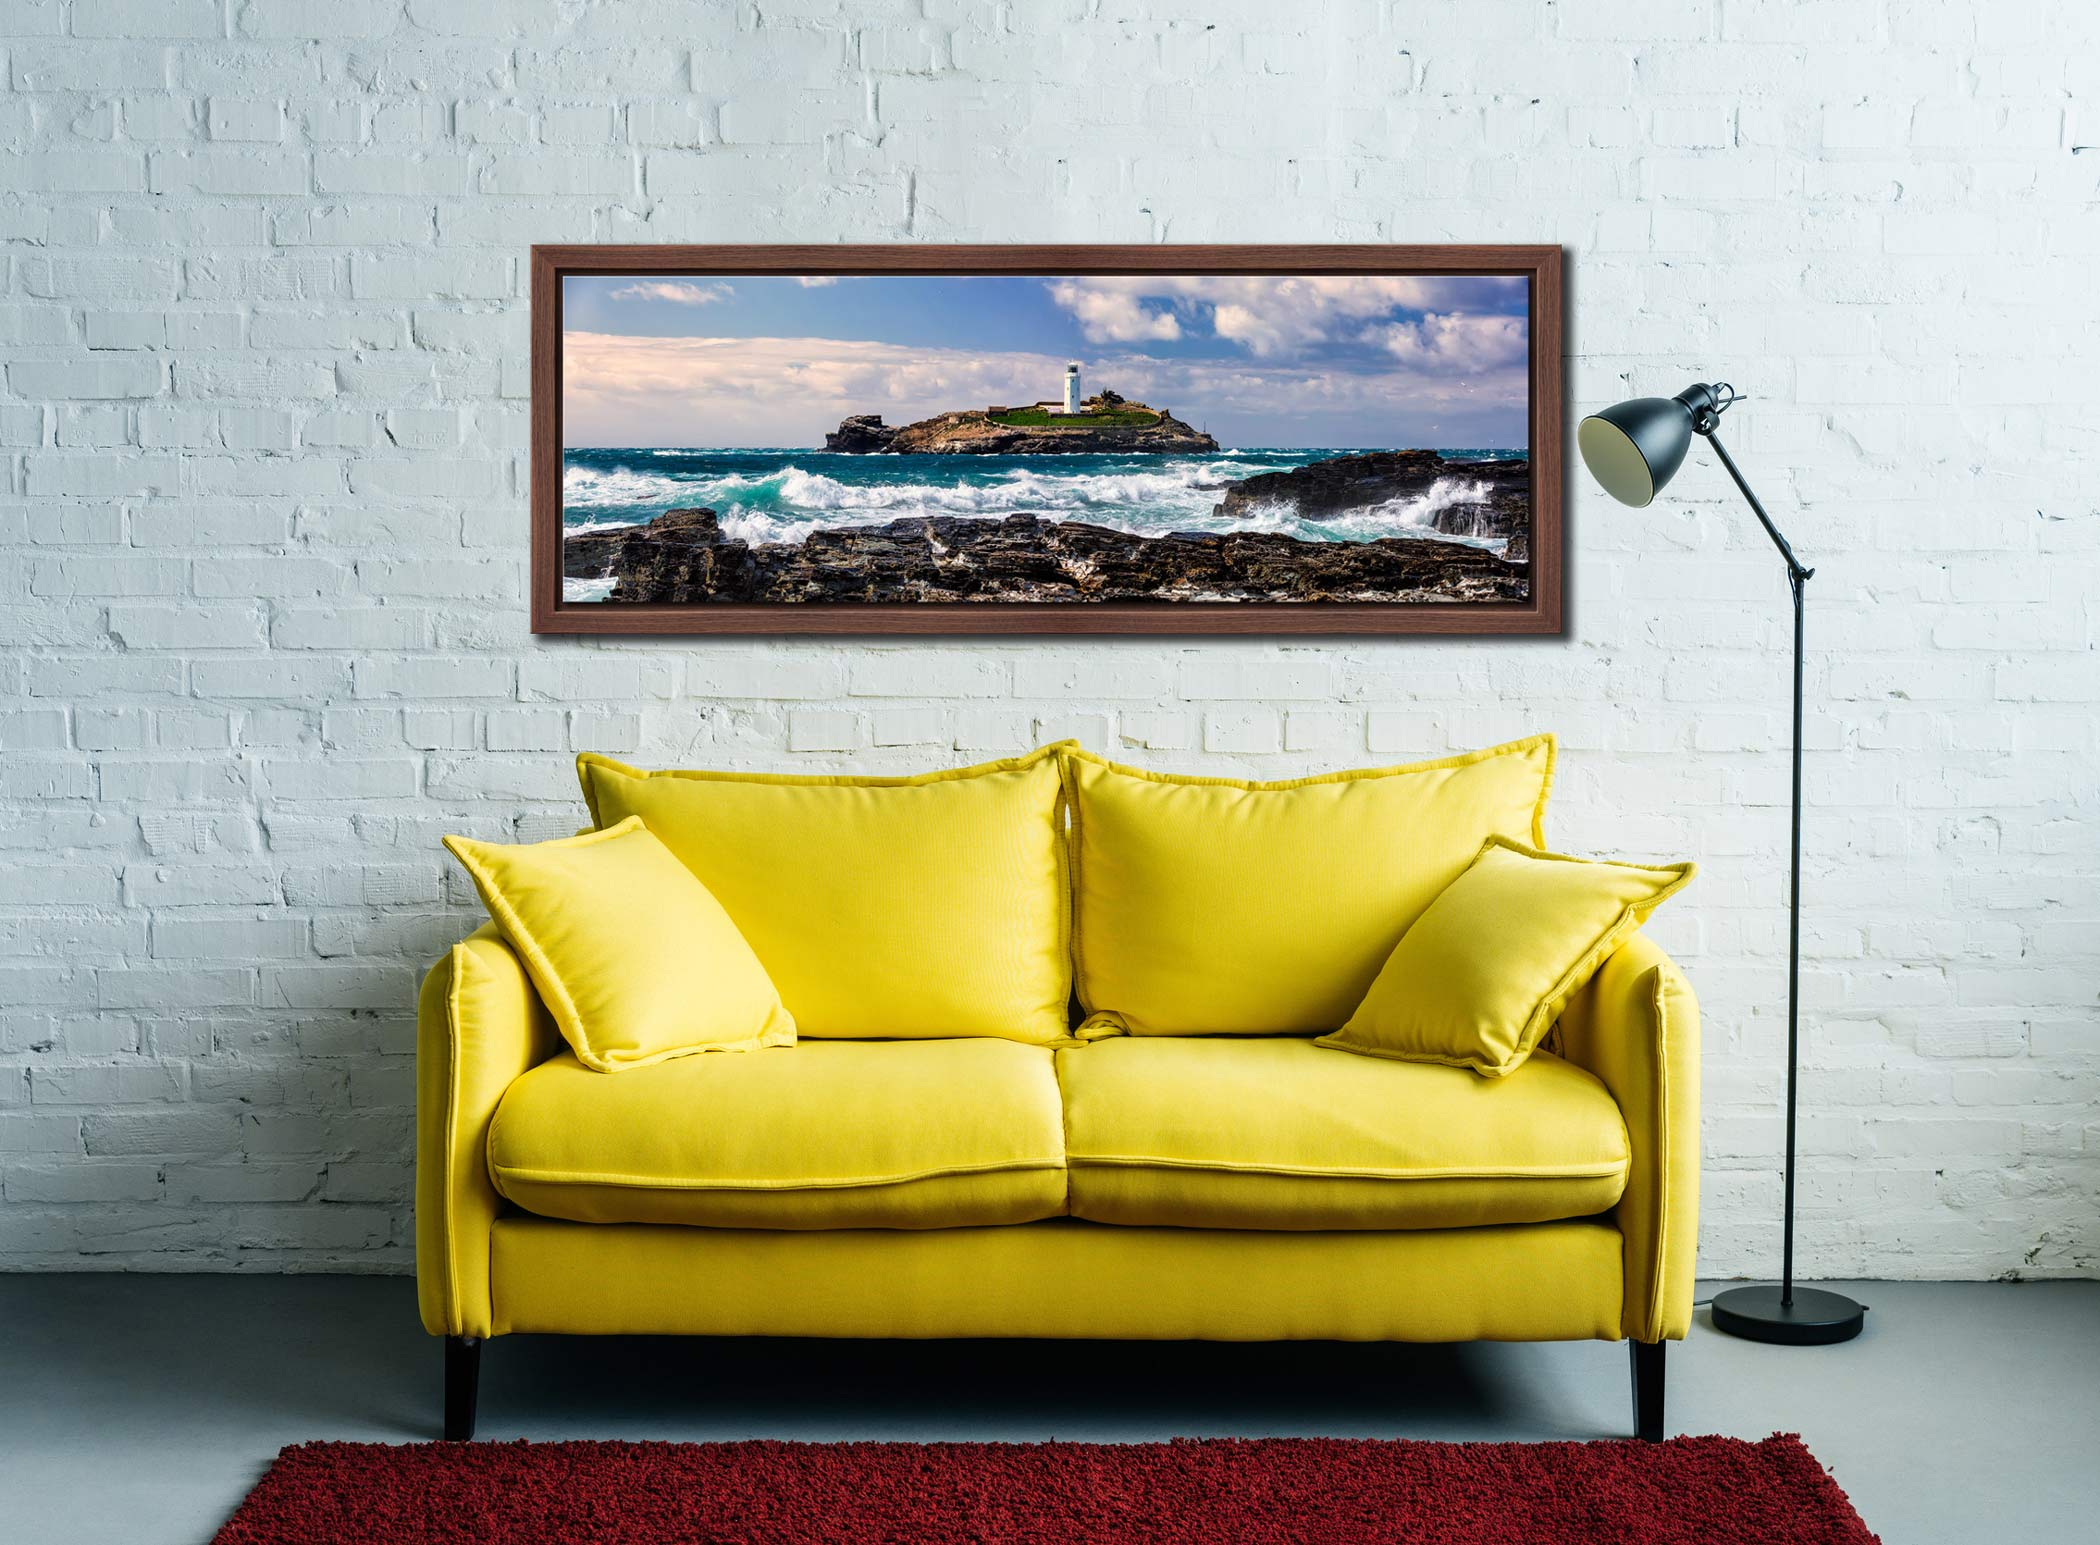 Godrevy Lighthouse and the rocks of Godrevy Point on a breezy spring afternoon - Walnut floater frame with acrylic glazing on Wall